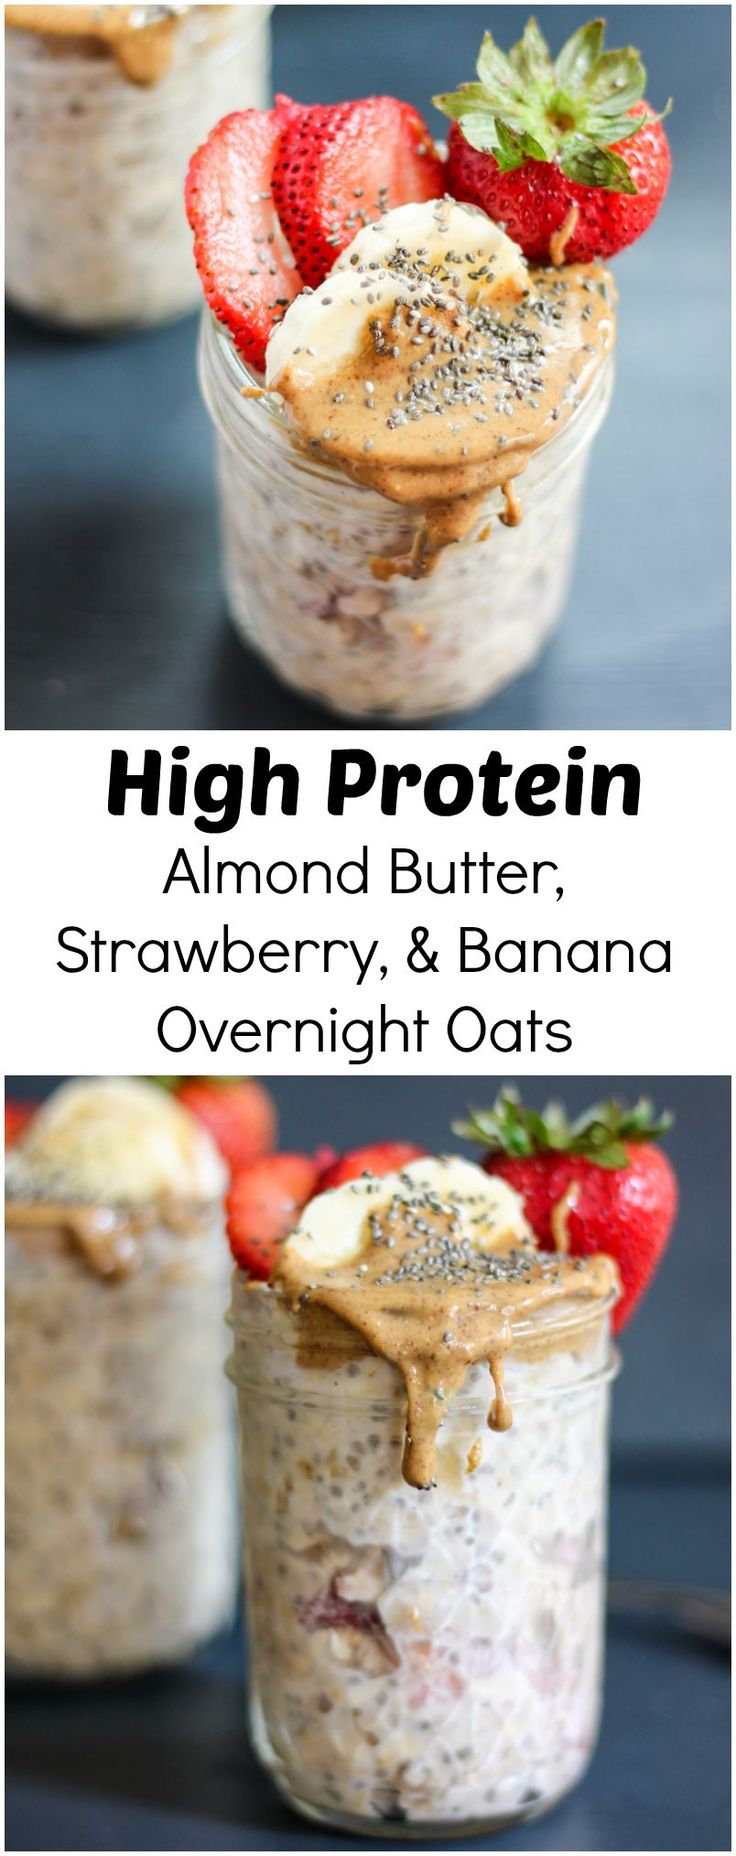 Almond Butter, Strawberry & Banana Overnight Oats 1 medium ripe banana, mashed 1 1/4 cups Almond Breeze Almondmilk Unsweetened Vanilla 1/2 cup nonfat vanilla greek yogurt 1 cup gluten free rolled oats 1 tablespoons chia seeds 10 strawberries, diced 2 tablespoons almond butter